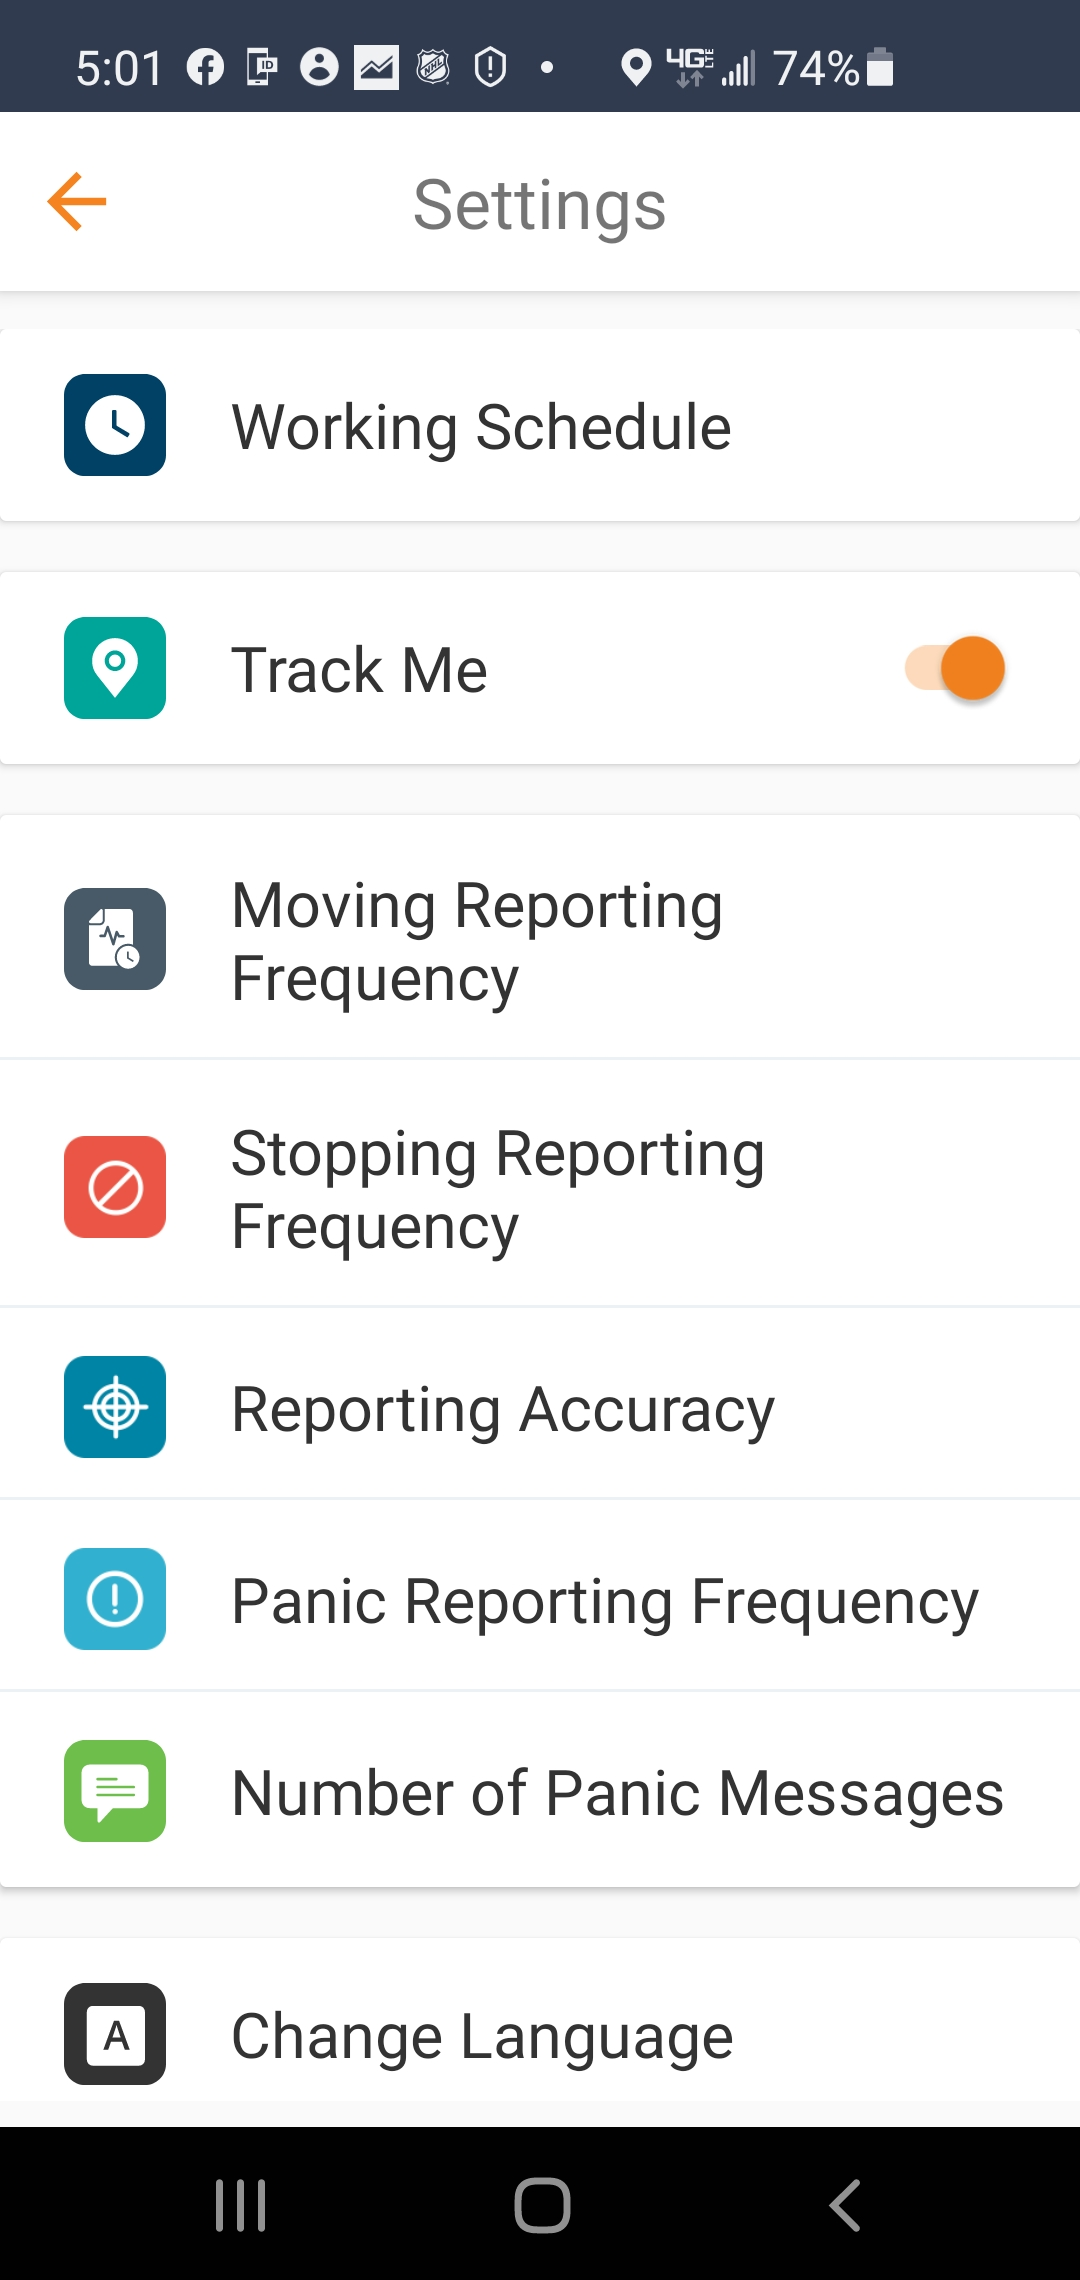 Phone Tracking With the Btracking App